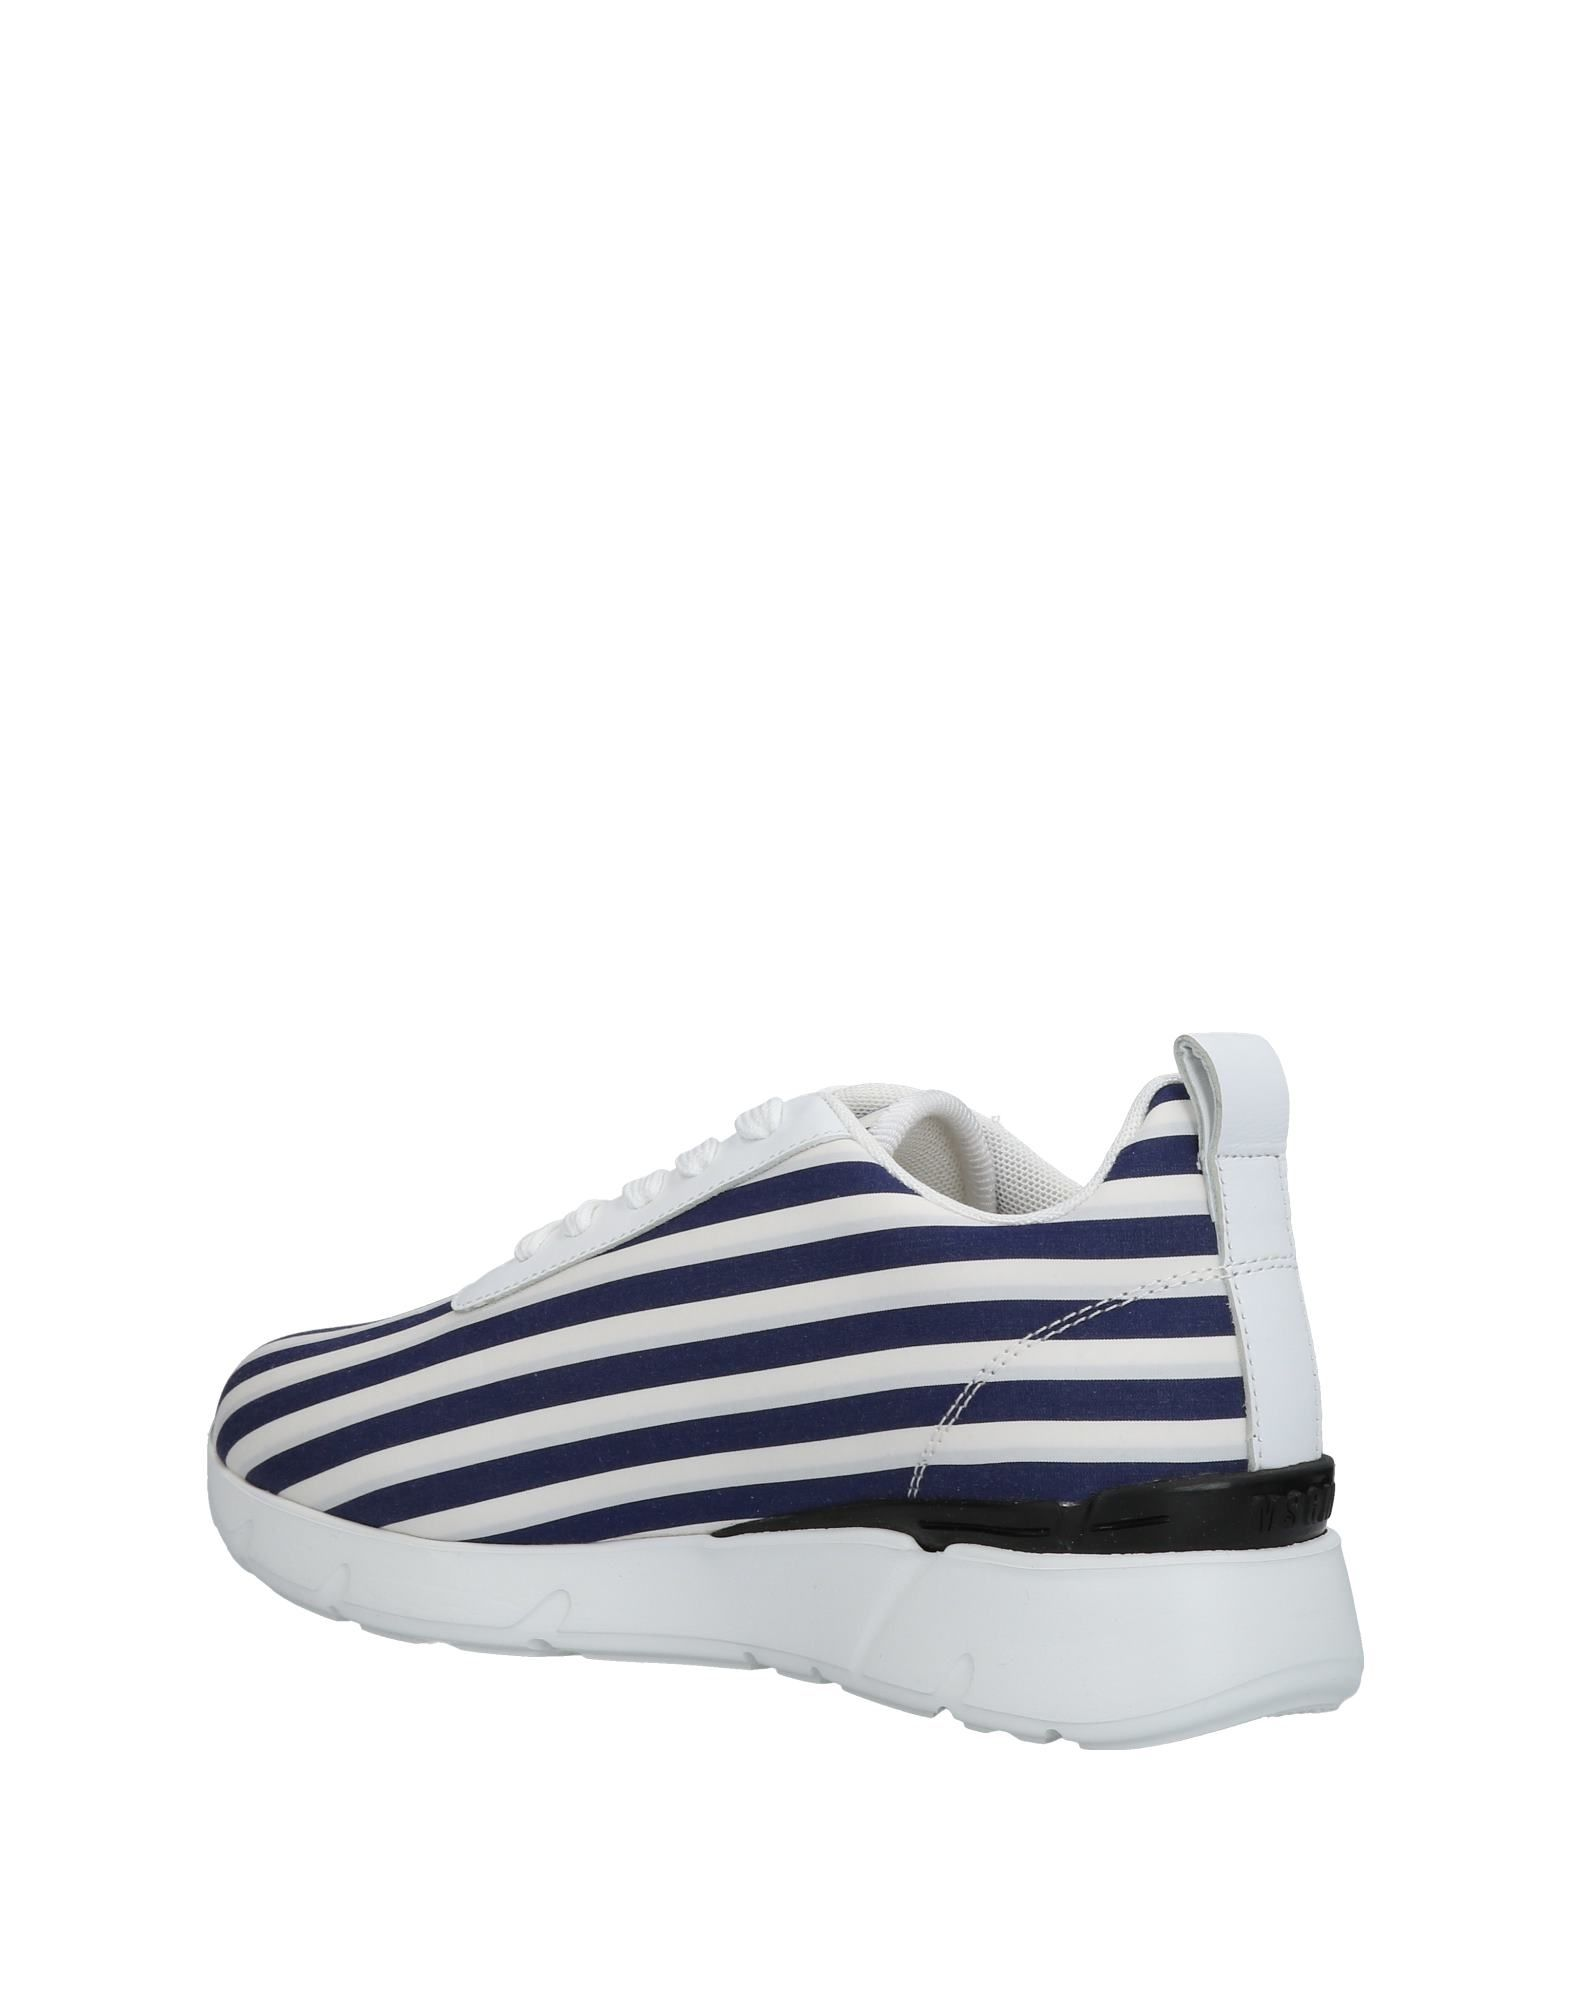 Sneakers Msgm Femme - Sneakers Msgm sur